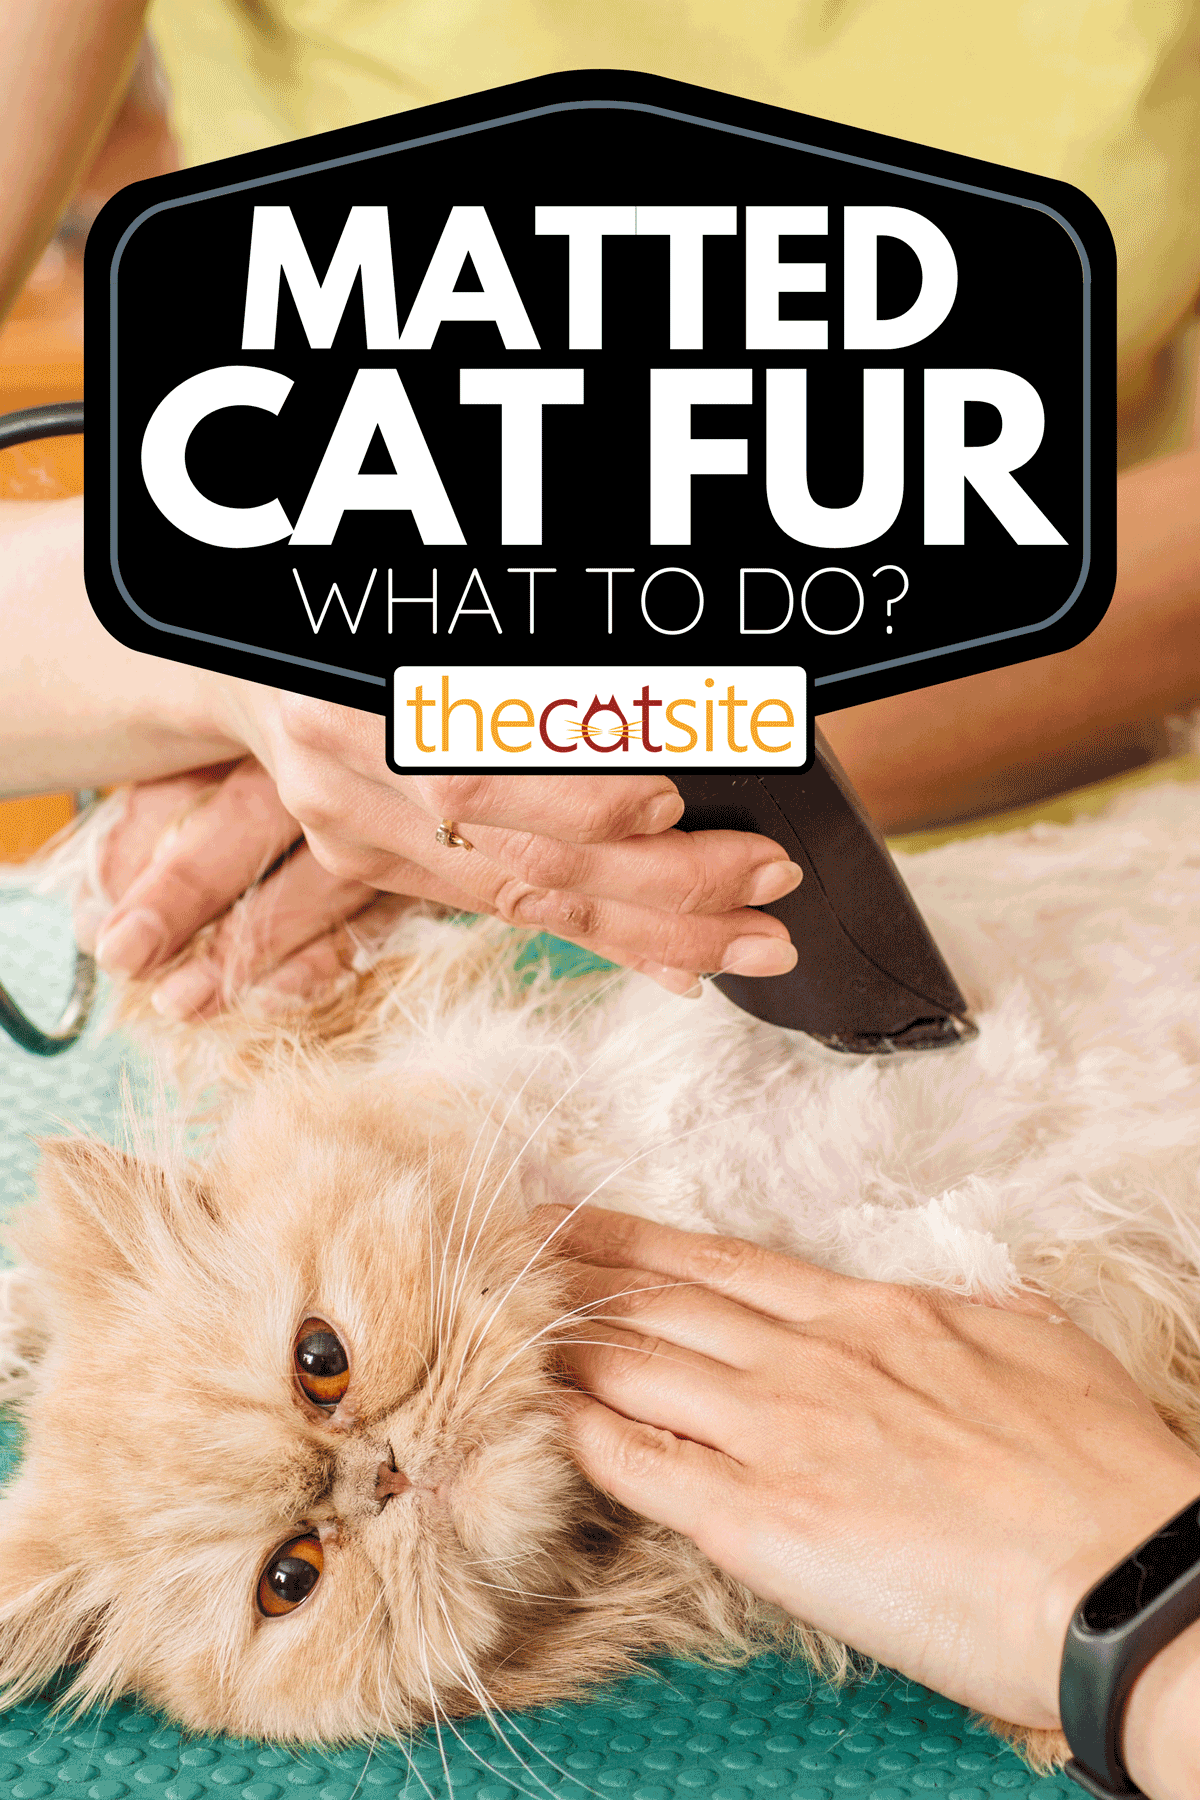 Grooming cat with tool for shedding hair, Matted Cat Fur - What To Do?